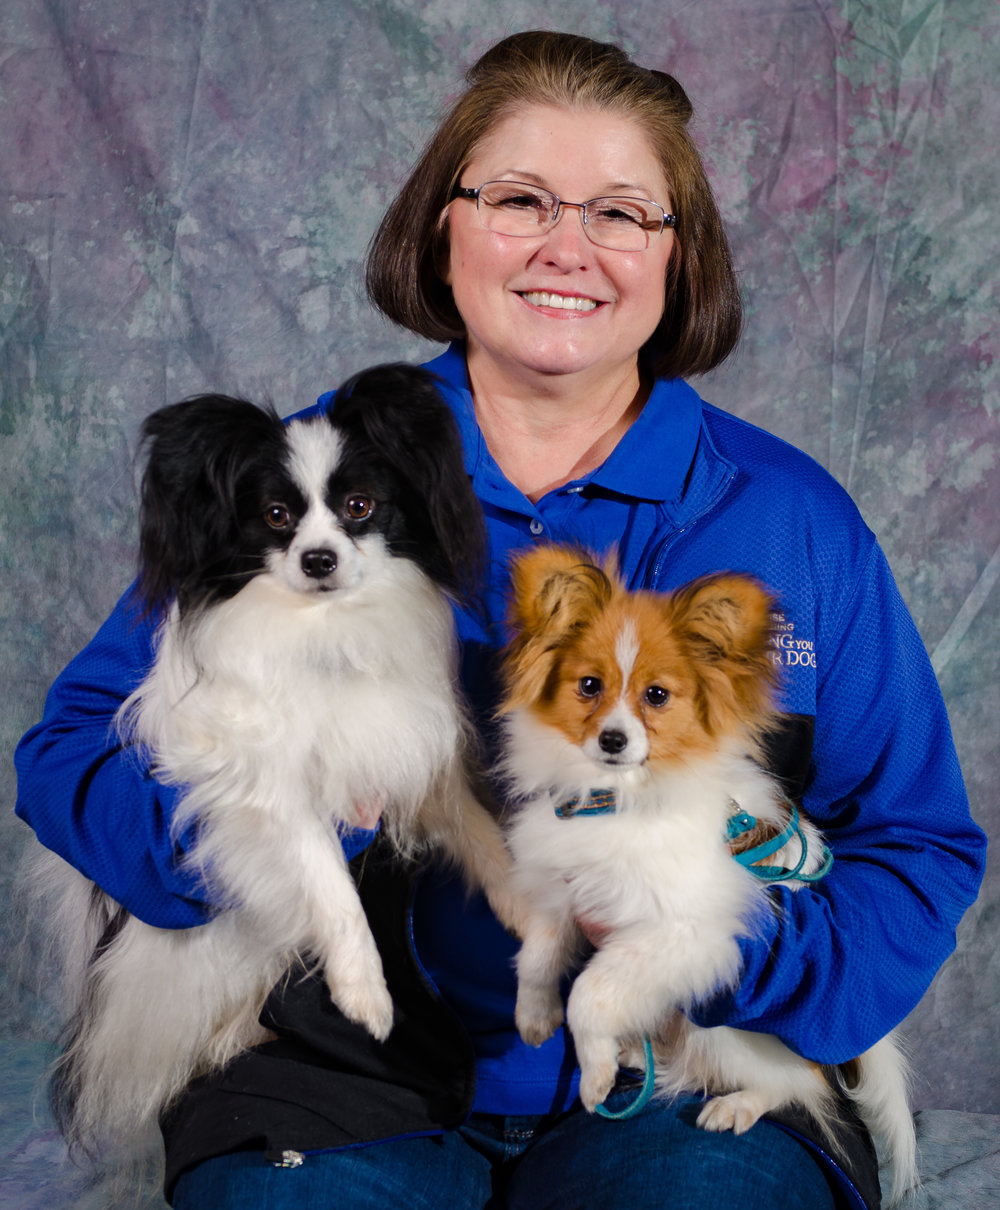 Helen Dohrmann KPA CTP, CPDT-KA certified professional dog trainer and karen pryor academy training partner in Redmond, Bellevue, Sammamish, Kirkland, Medina and Issaquah, WA. Positive reinforcment dog trainer specialist in papillons, clicker training, conformation, obedience, rally, CGC, obedience, tricks, and therapy dog training.